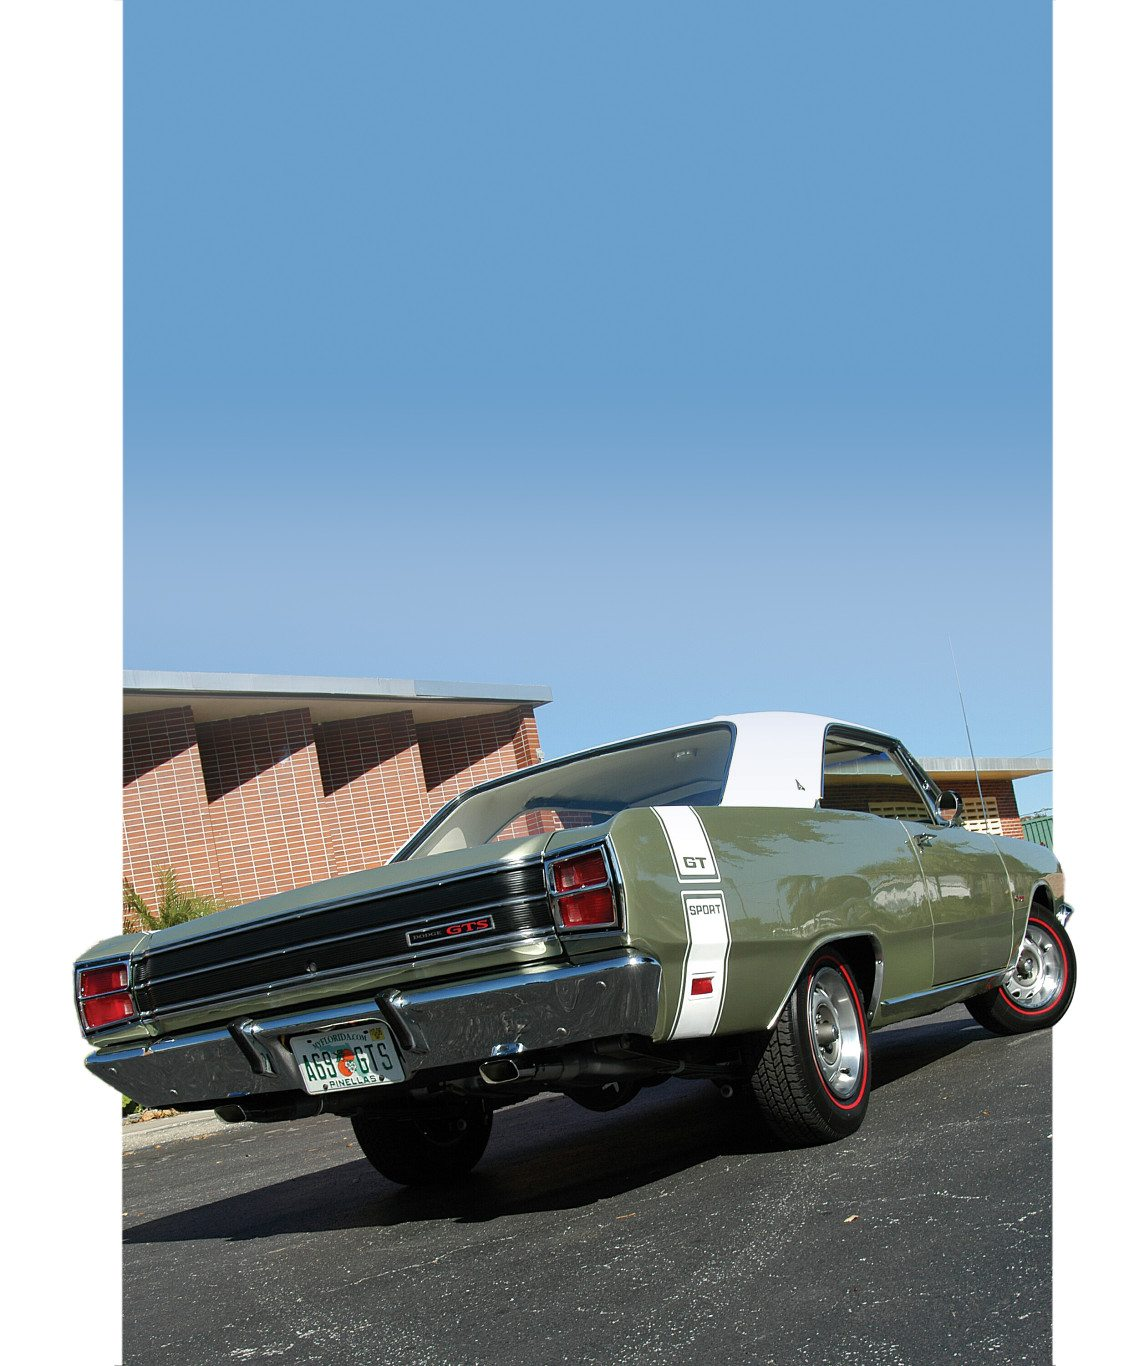 1969 Dodge Dart 340 GTS Hardtop Rear